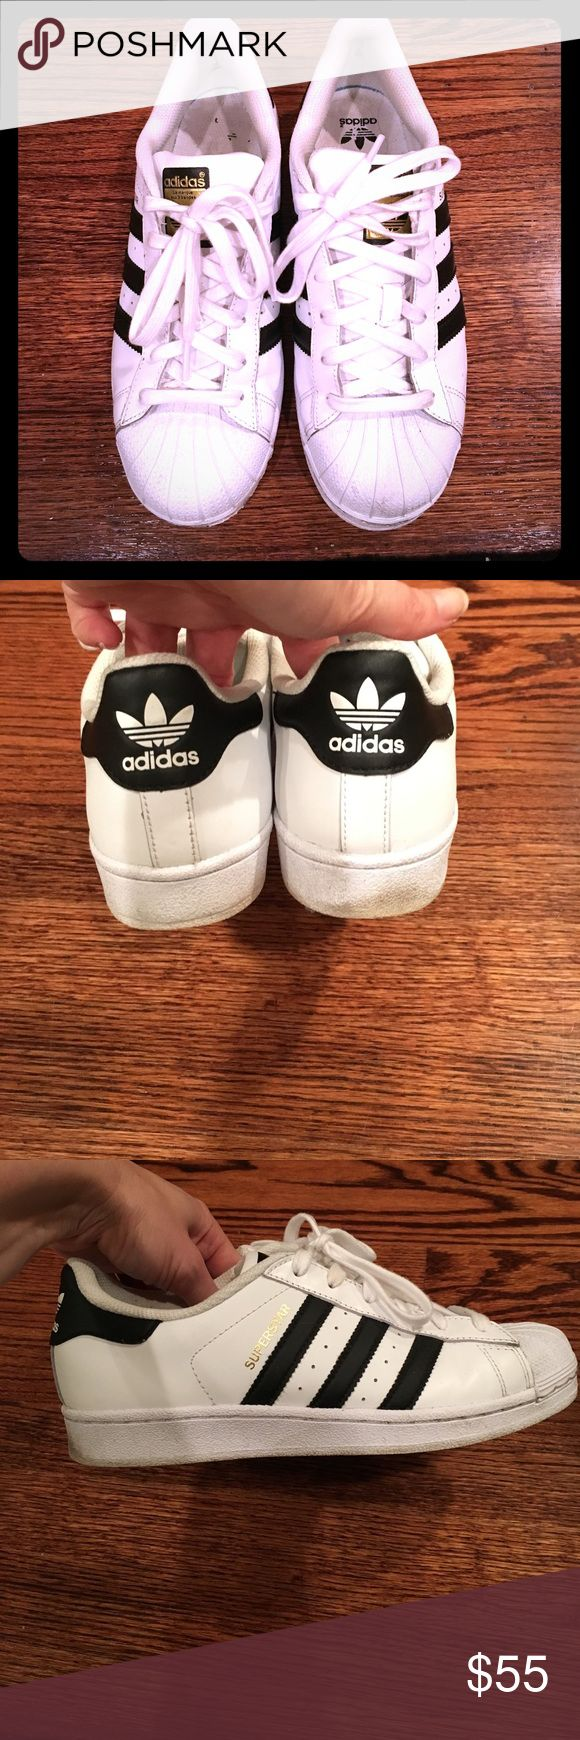 adidas gazelle blue and white stripe shoes outfit foot locker adidas stan smith rose gold